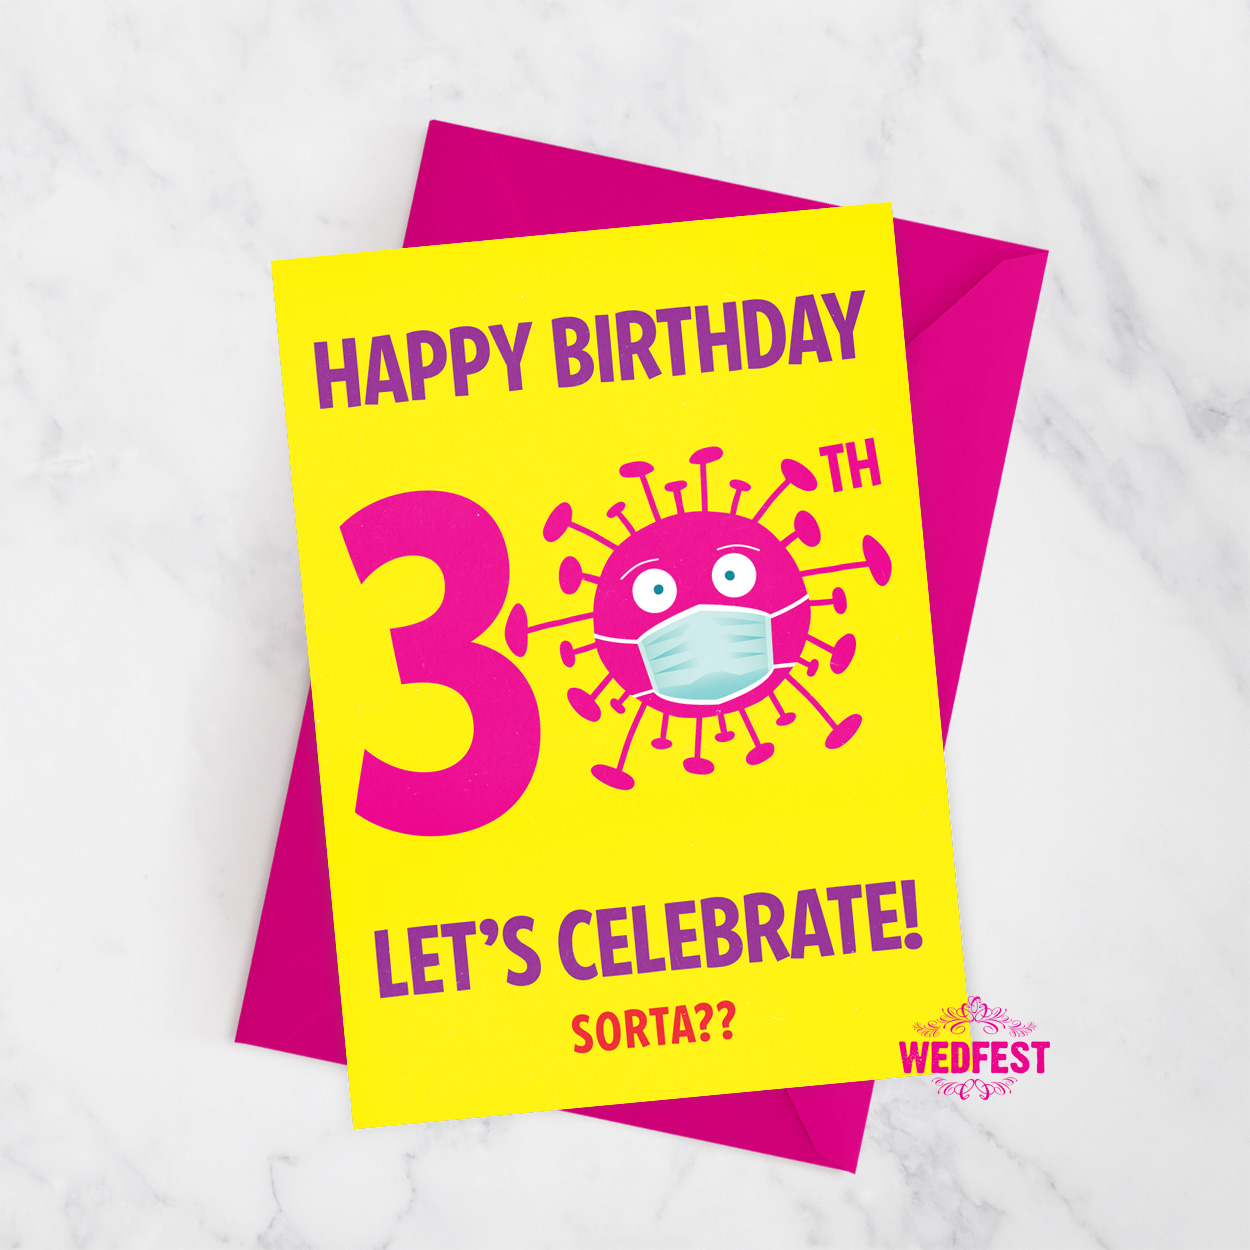 corona virus covid lockdown 30th birthday card